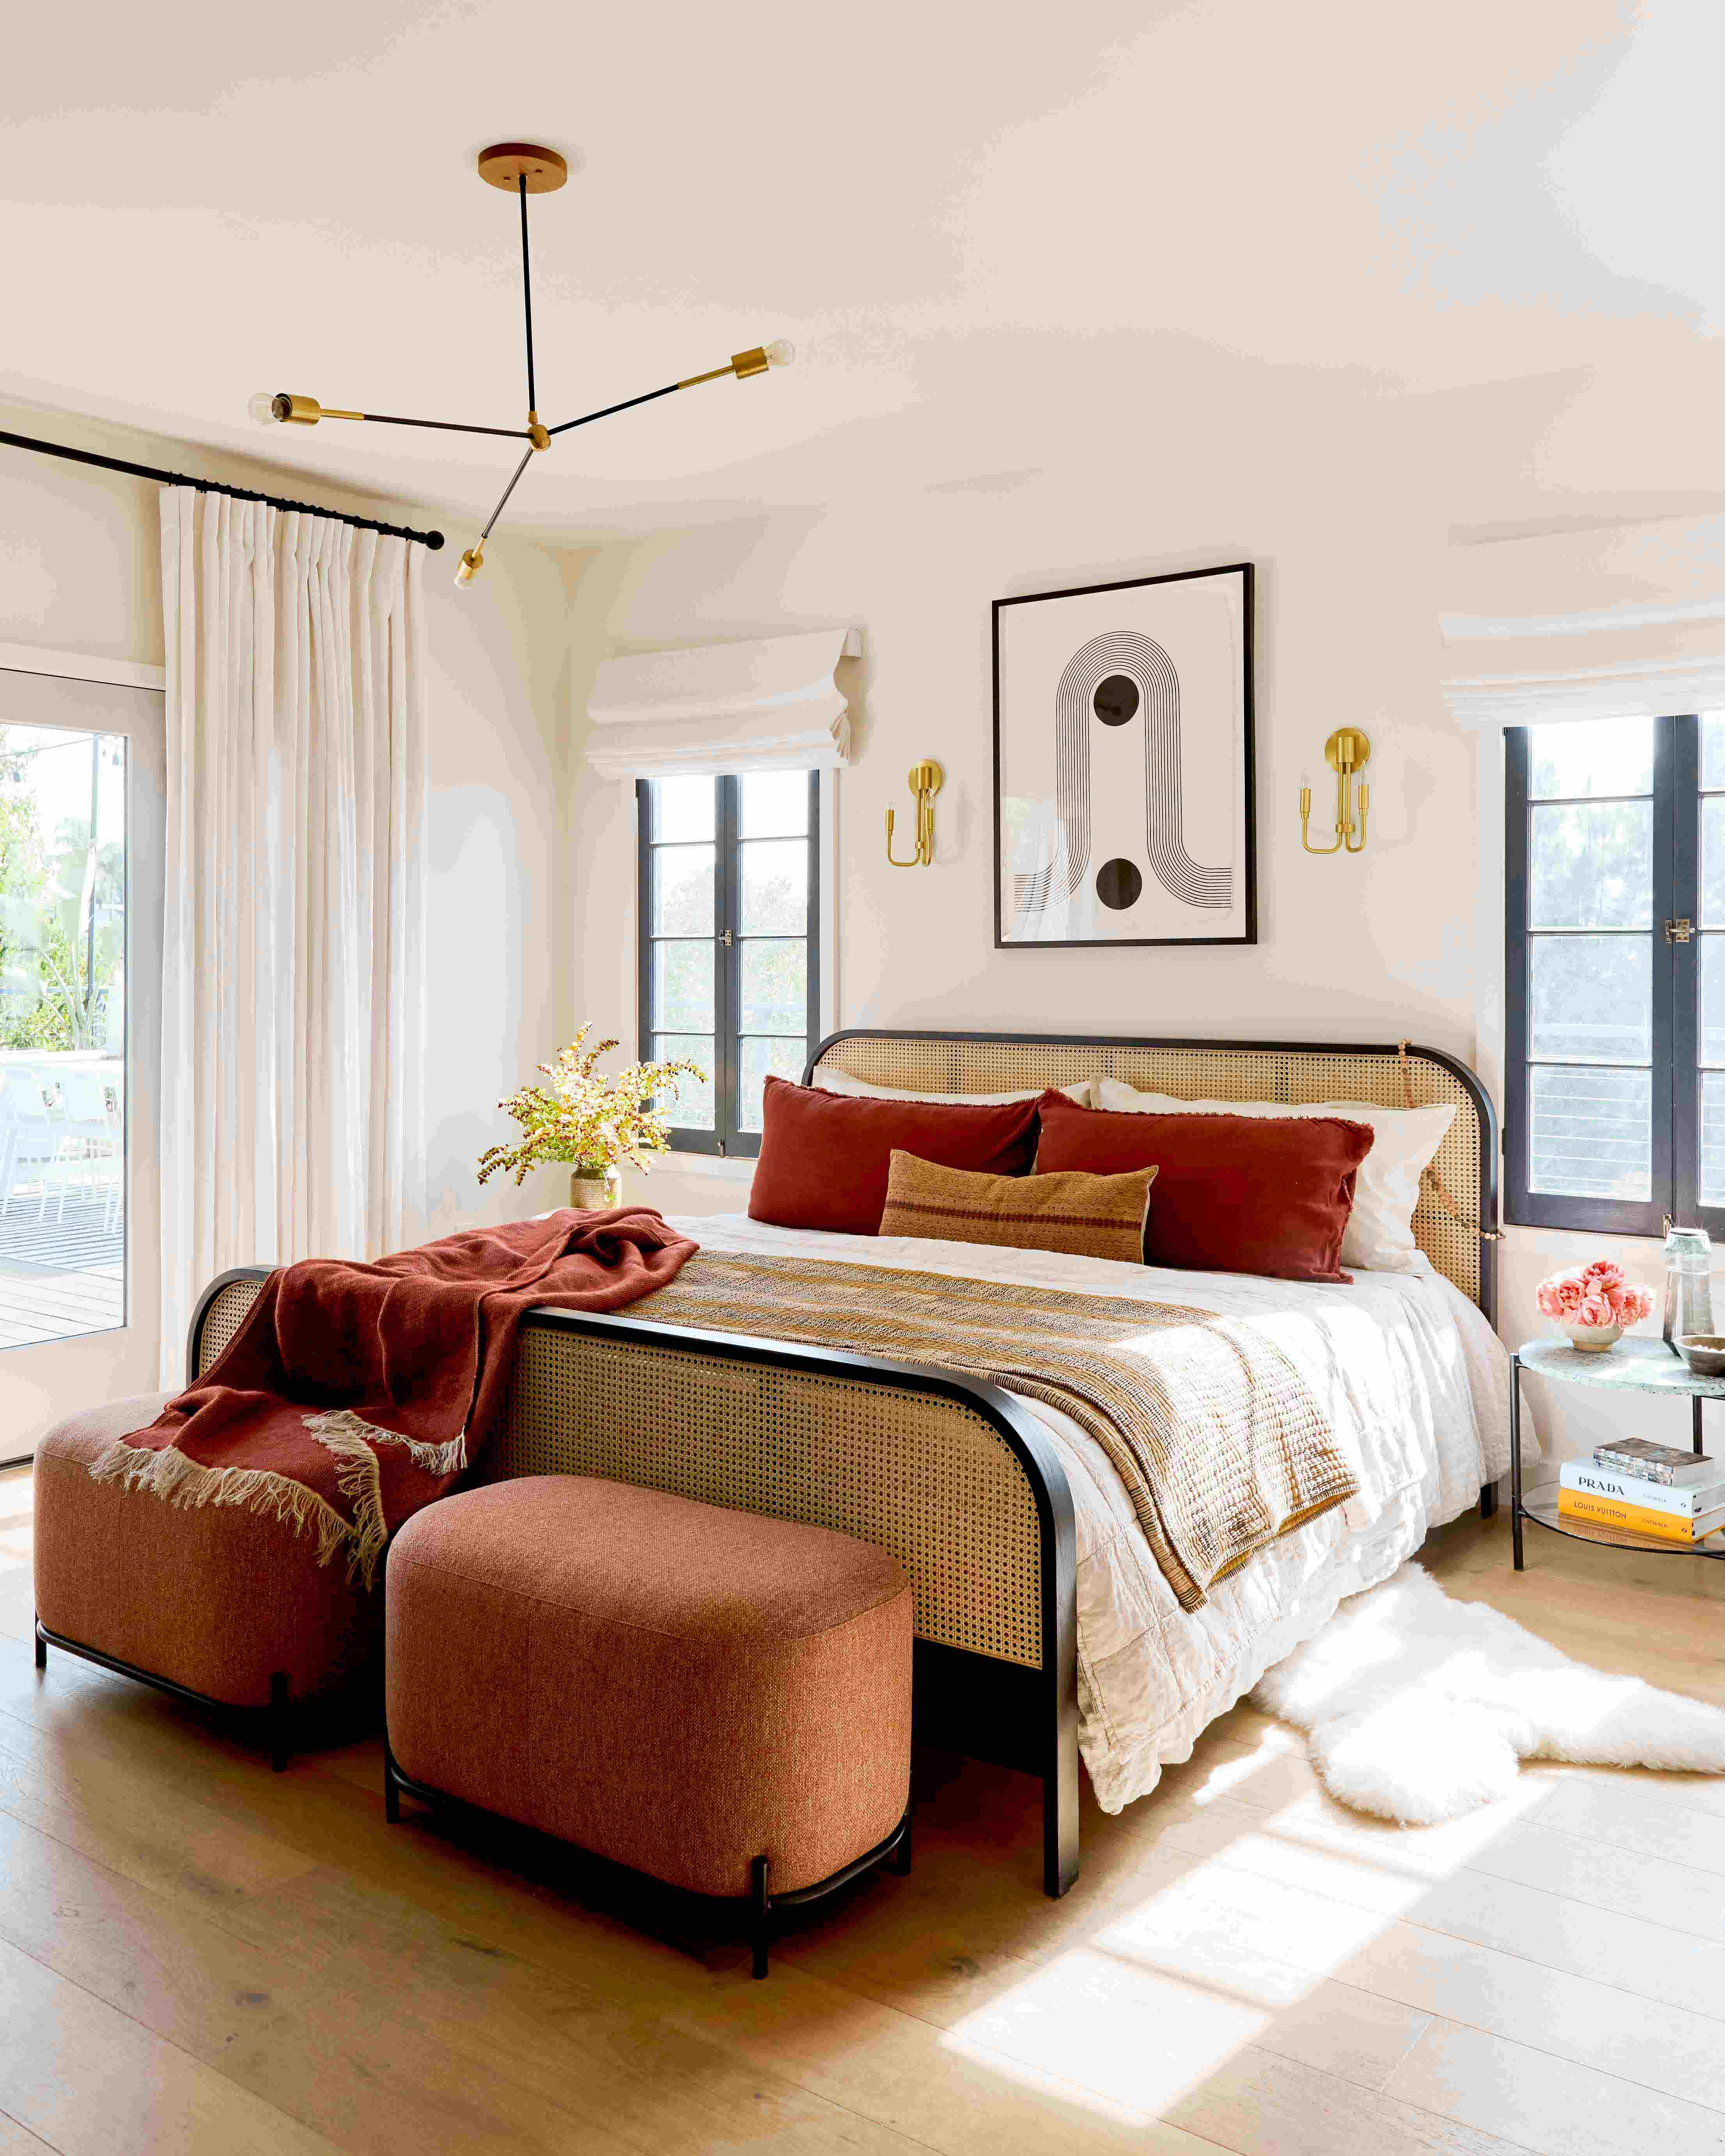 An Industry West Cane Bed and Hemlock Ottomans in Jaclyn Johnson's LA home